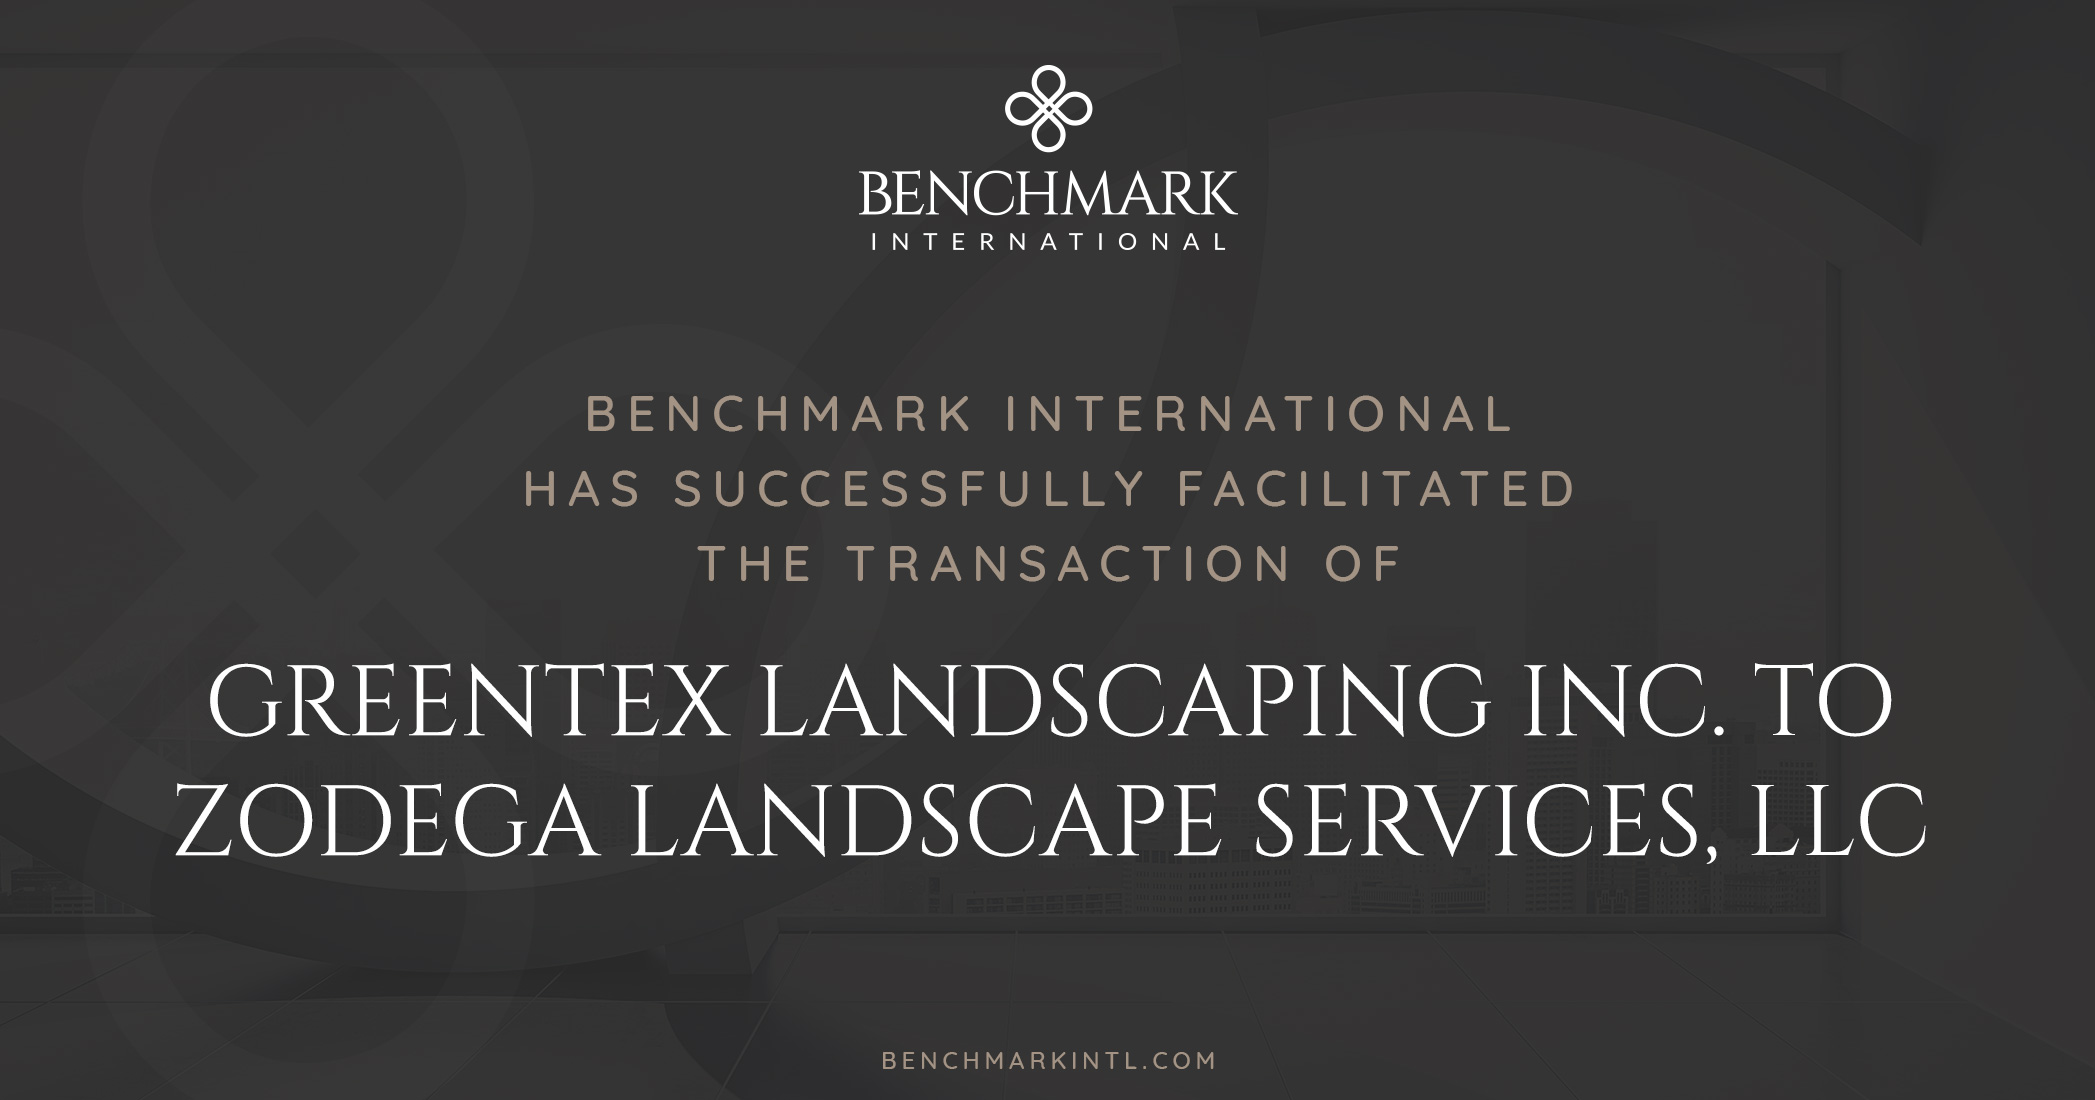 Benchmark International Successfully Facilitated the Transaction of Greentex Landscaping, Inc. to Zodega Landscape Services, LLC